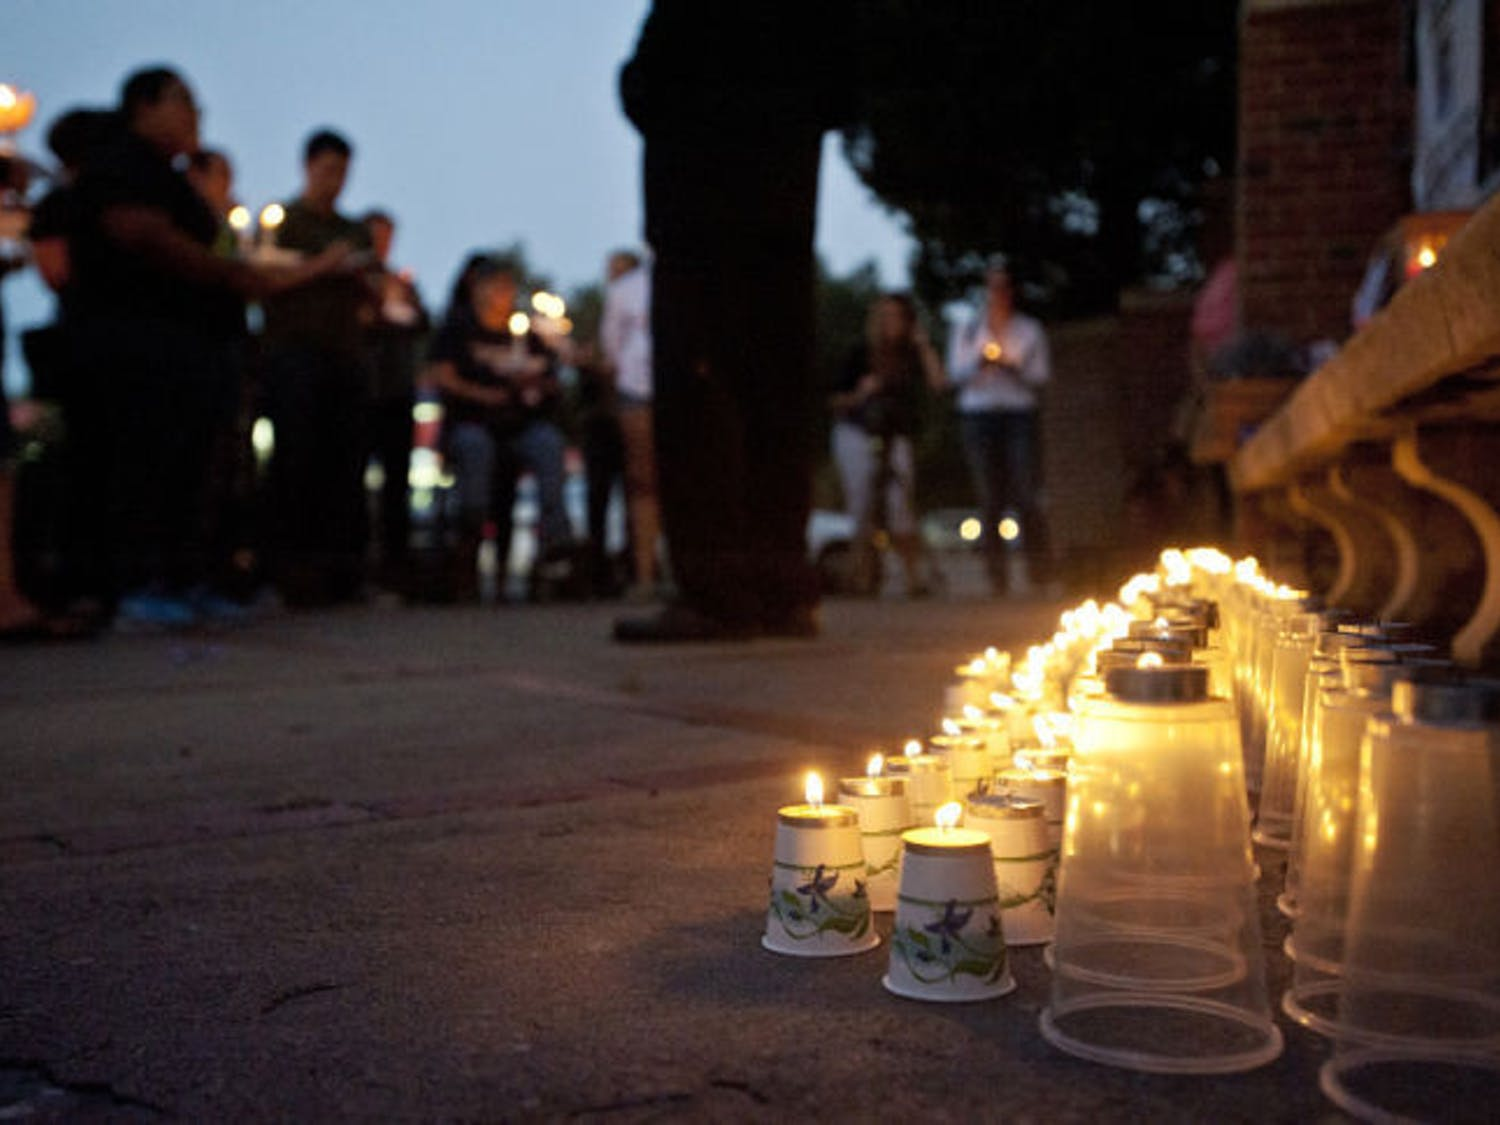 The Reverend William H. Russell Jr., 51, from The United New Testament Church International speaks at a candlelight vigil held for missing Christian Aguilar on the corner of Southwest 13th Street and West University Avenue Thursday evening. Christian Aguilar went missing on Sept. 20, Pedro Bravo, the main suspect in the disappearance was indicted with murder and kidnapping charges on Monday.